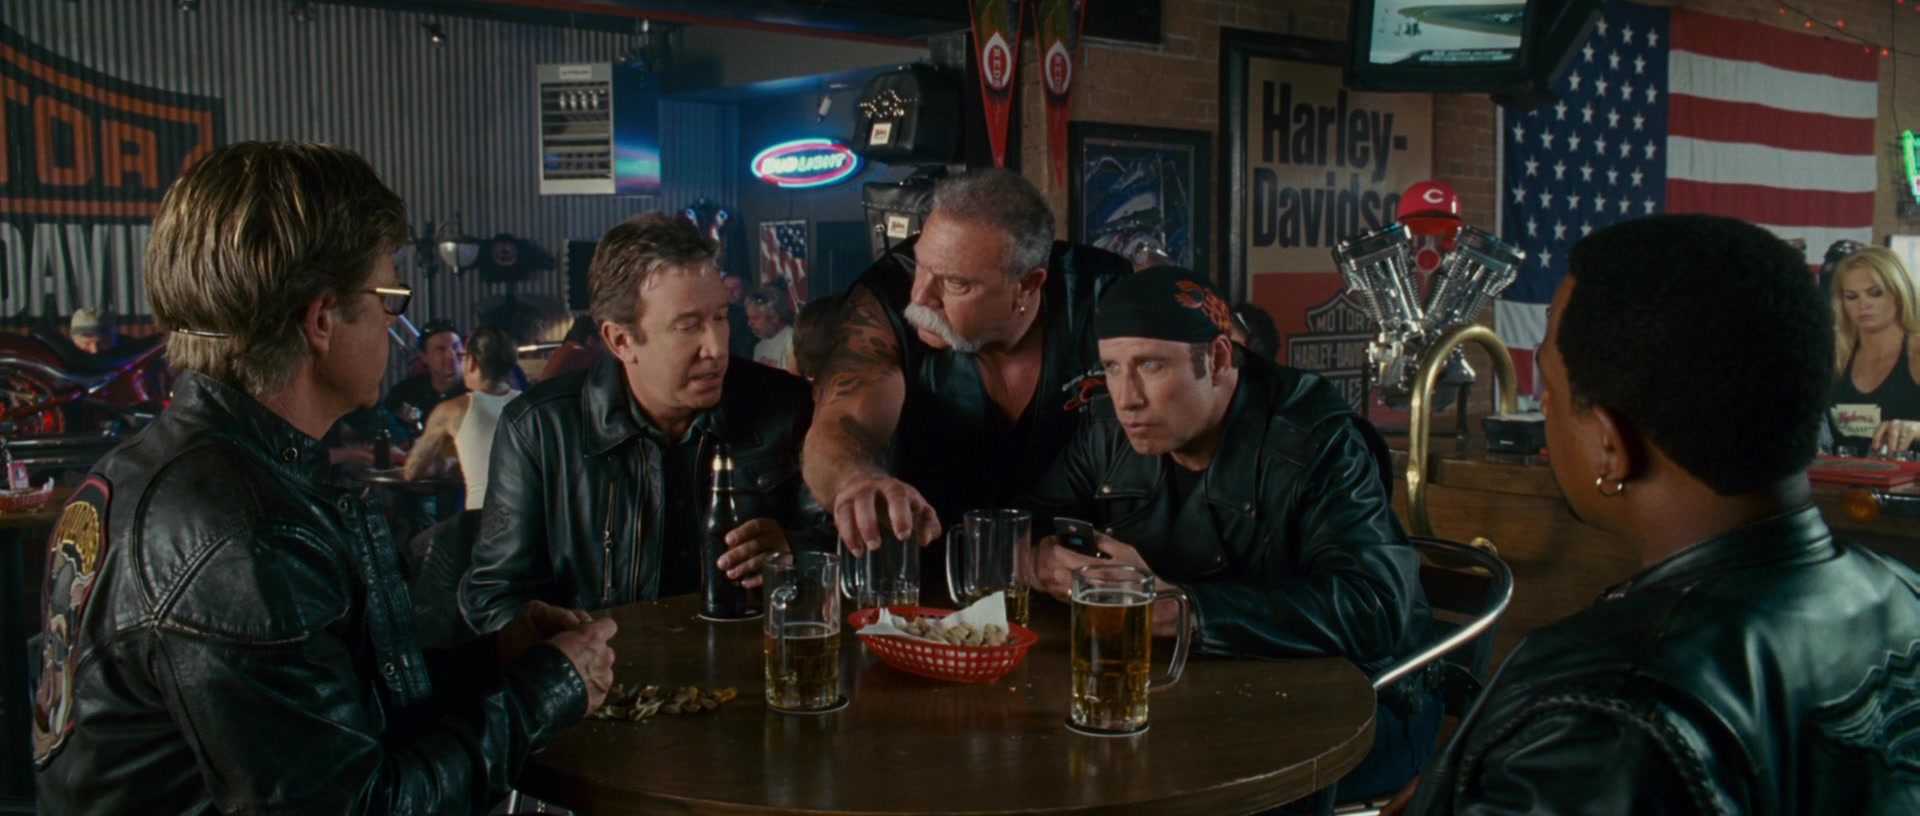 Harley Davidson Posters In Wild Hogs 2007